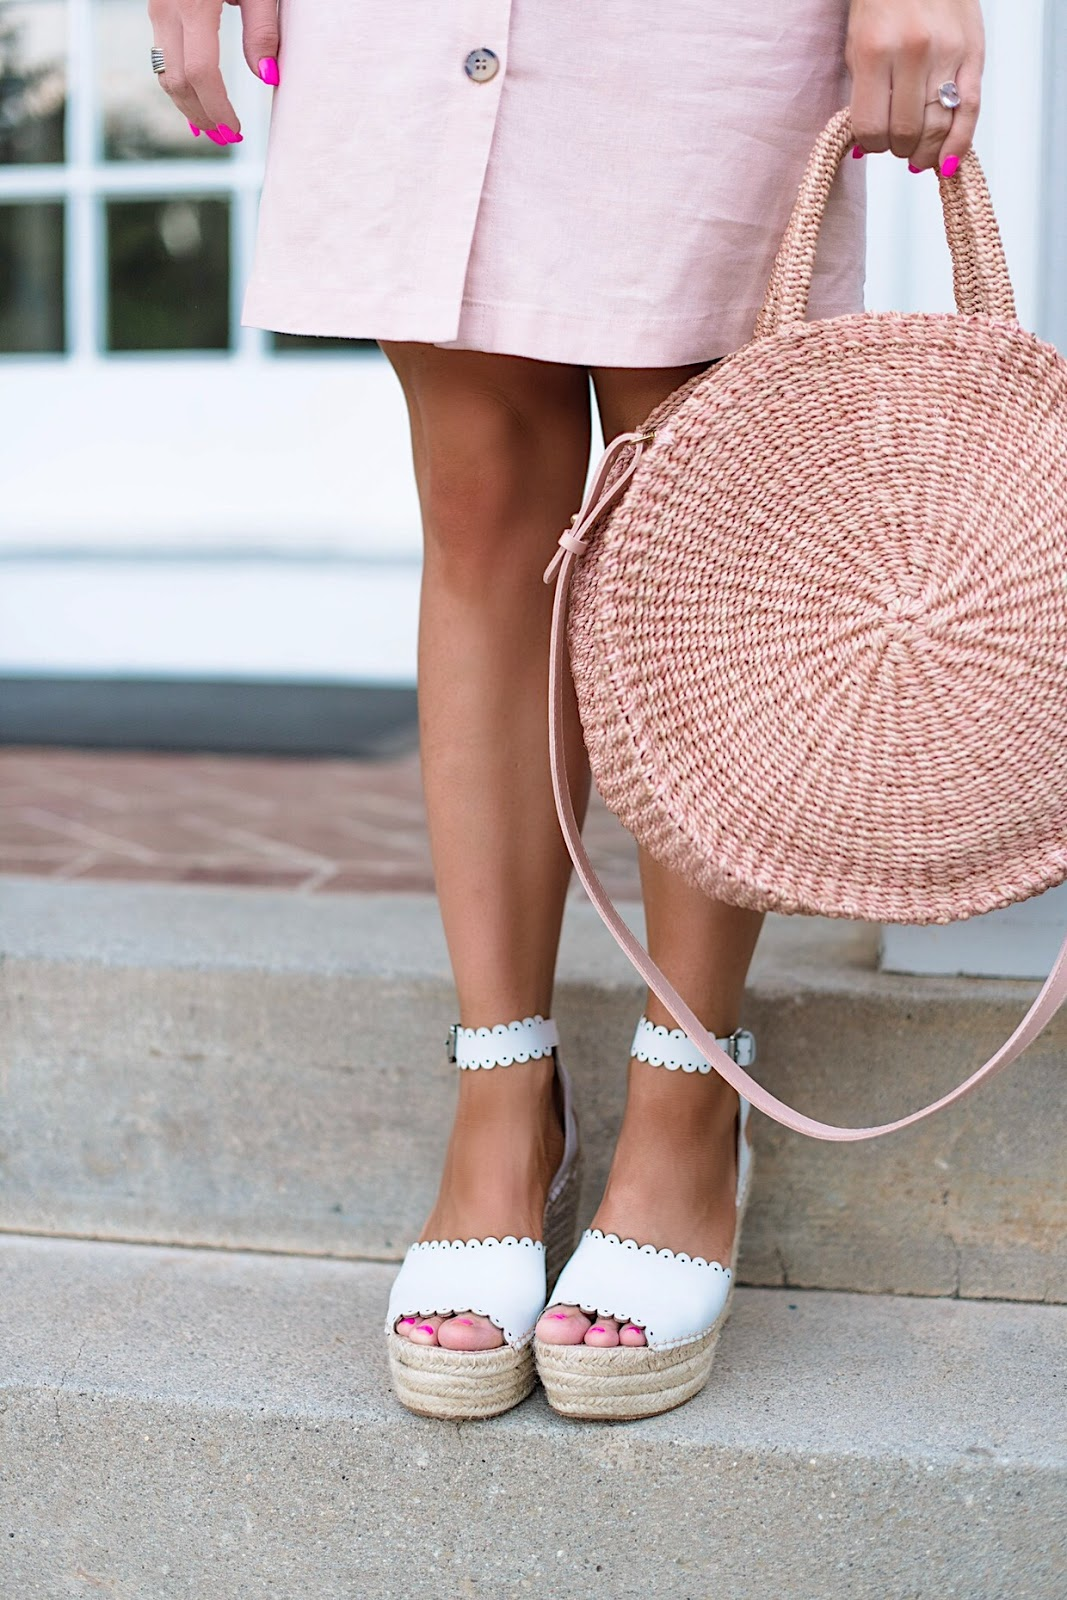 Scallop Wedges and Clare V. Alice Bag in Blush - Something Delightful Blog